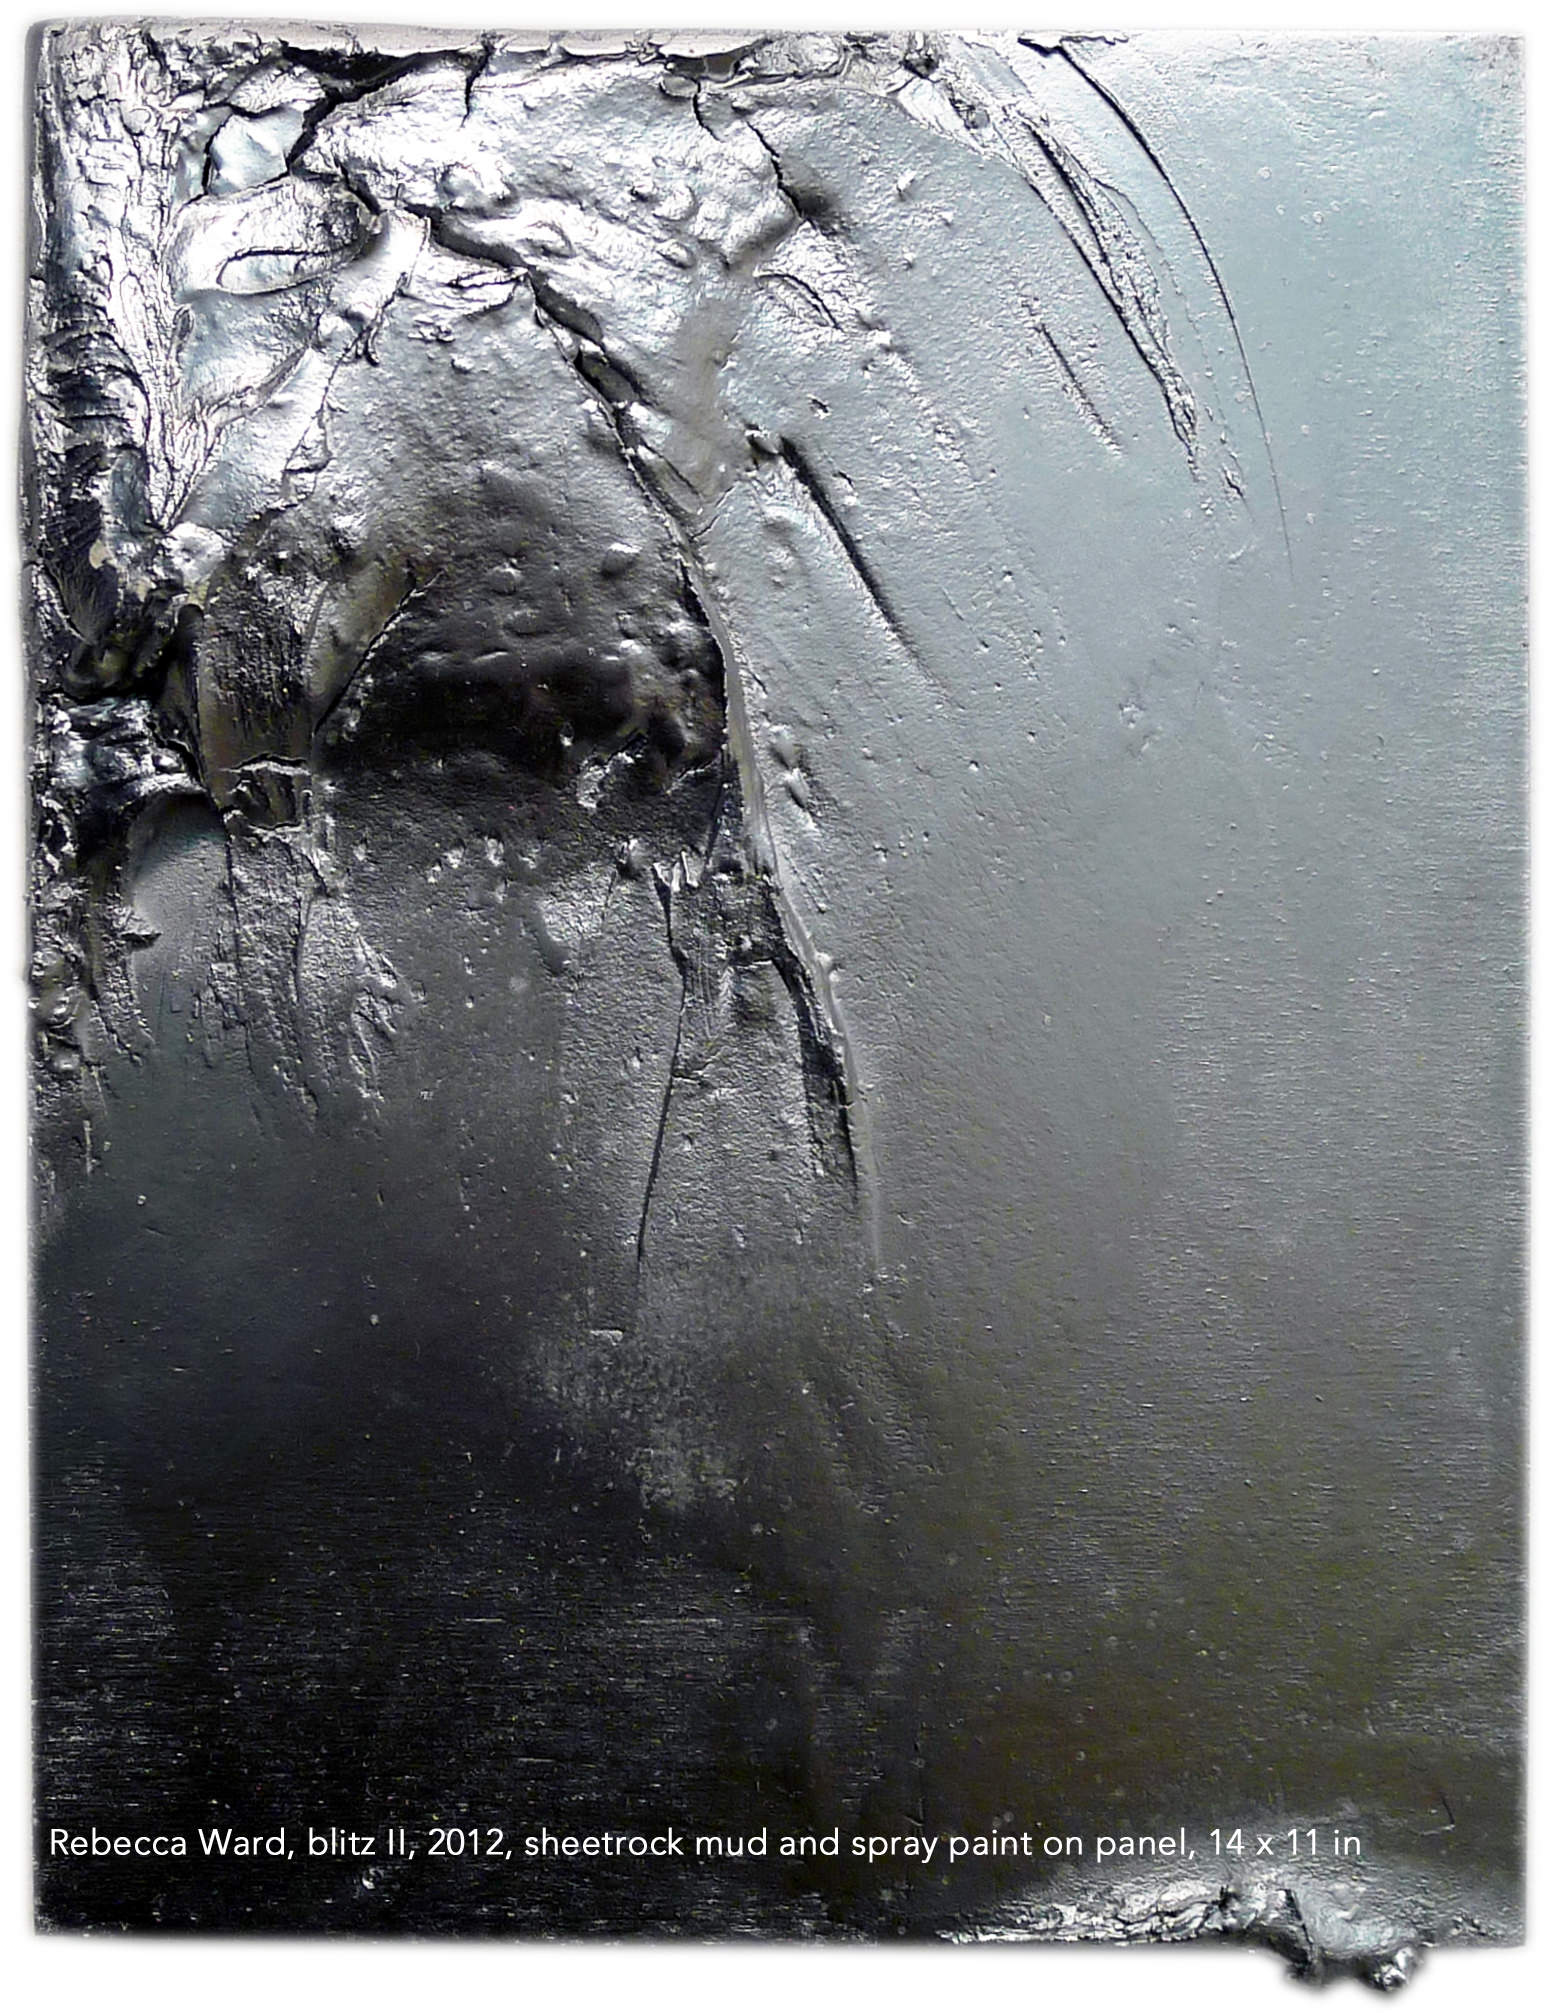 Rebecca Ward, blitz II, 2012, sheetrock mud and spray paint on panel, 14 x 11 in. PROCESSED